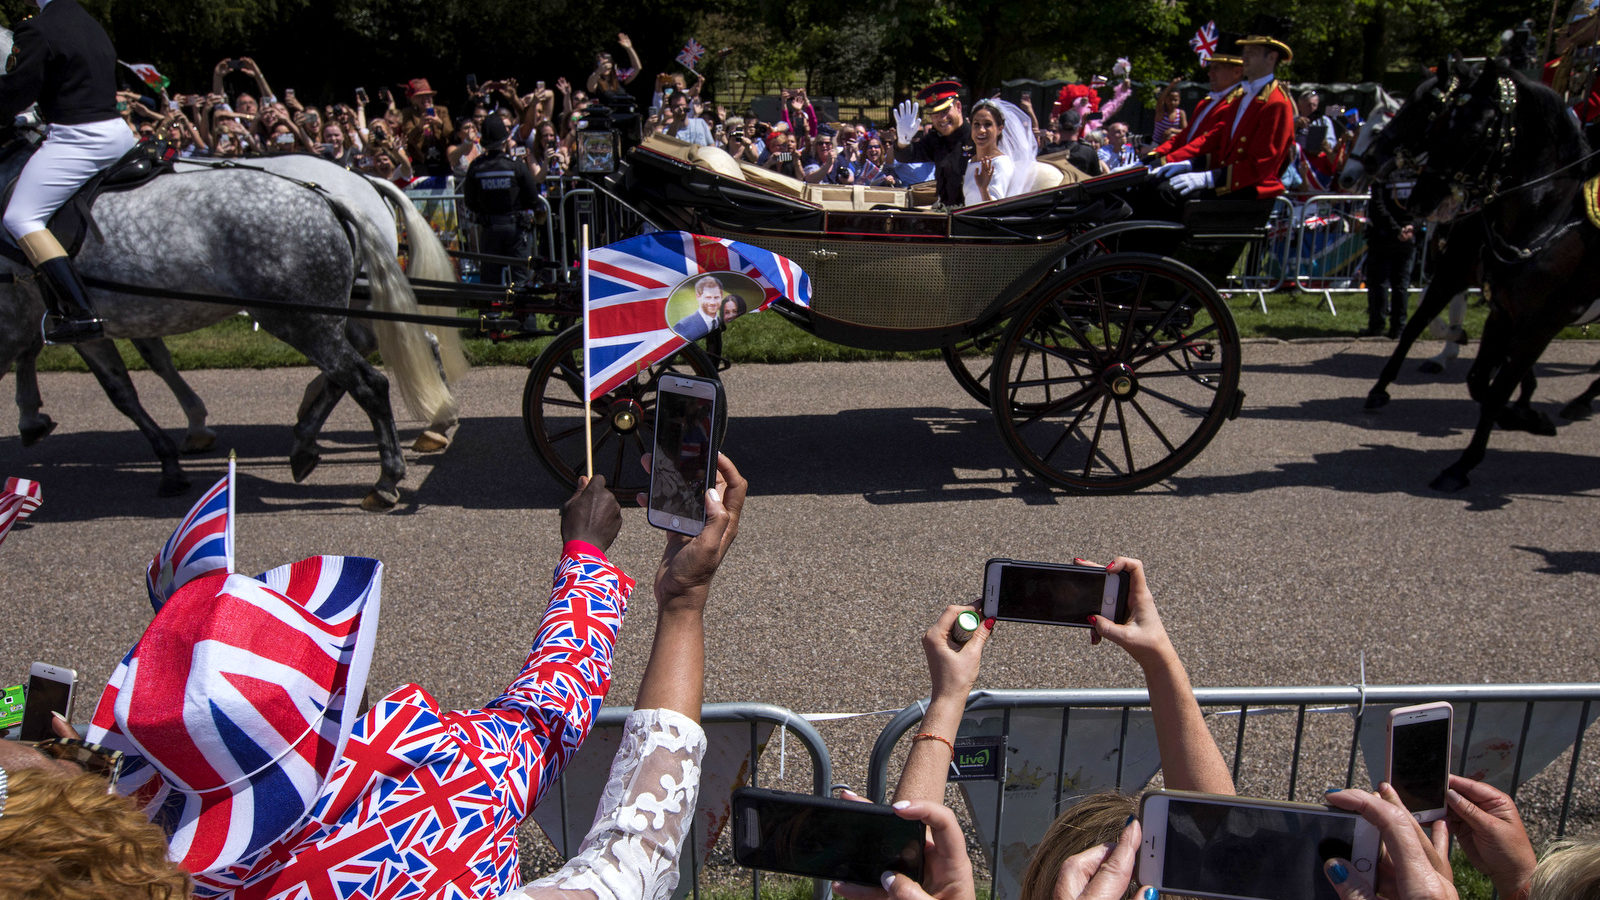 Britain's Prince Harry and Meghan Markle wave to the crowd in a carriage after their wedding ceremony at St. George's Chapel in Windsor Castle in Windsor, near London, England, May 19, 2018. (AP/Emilio Morenatti)